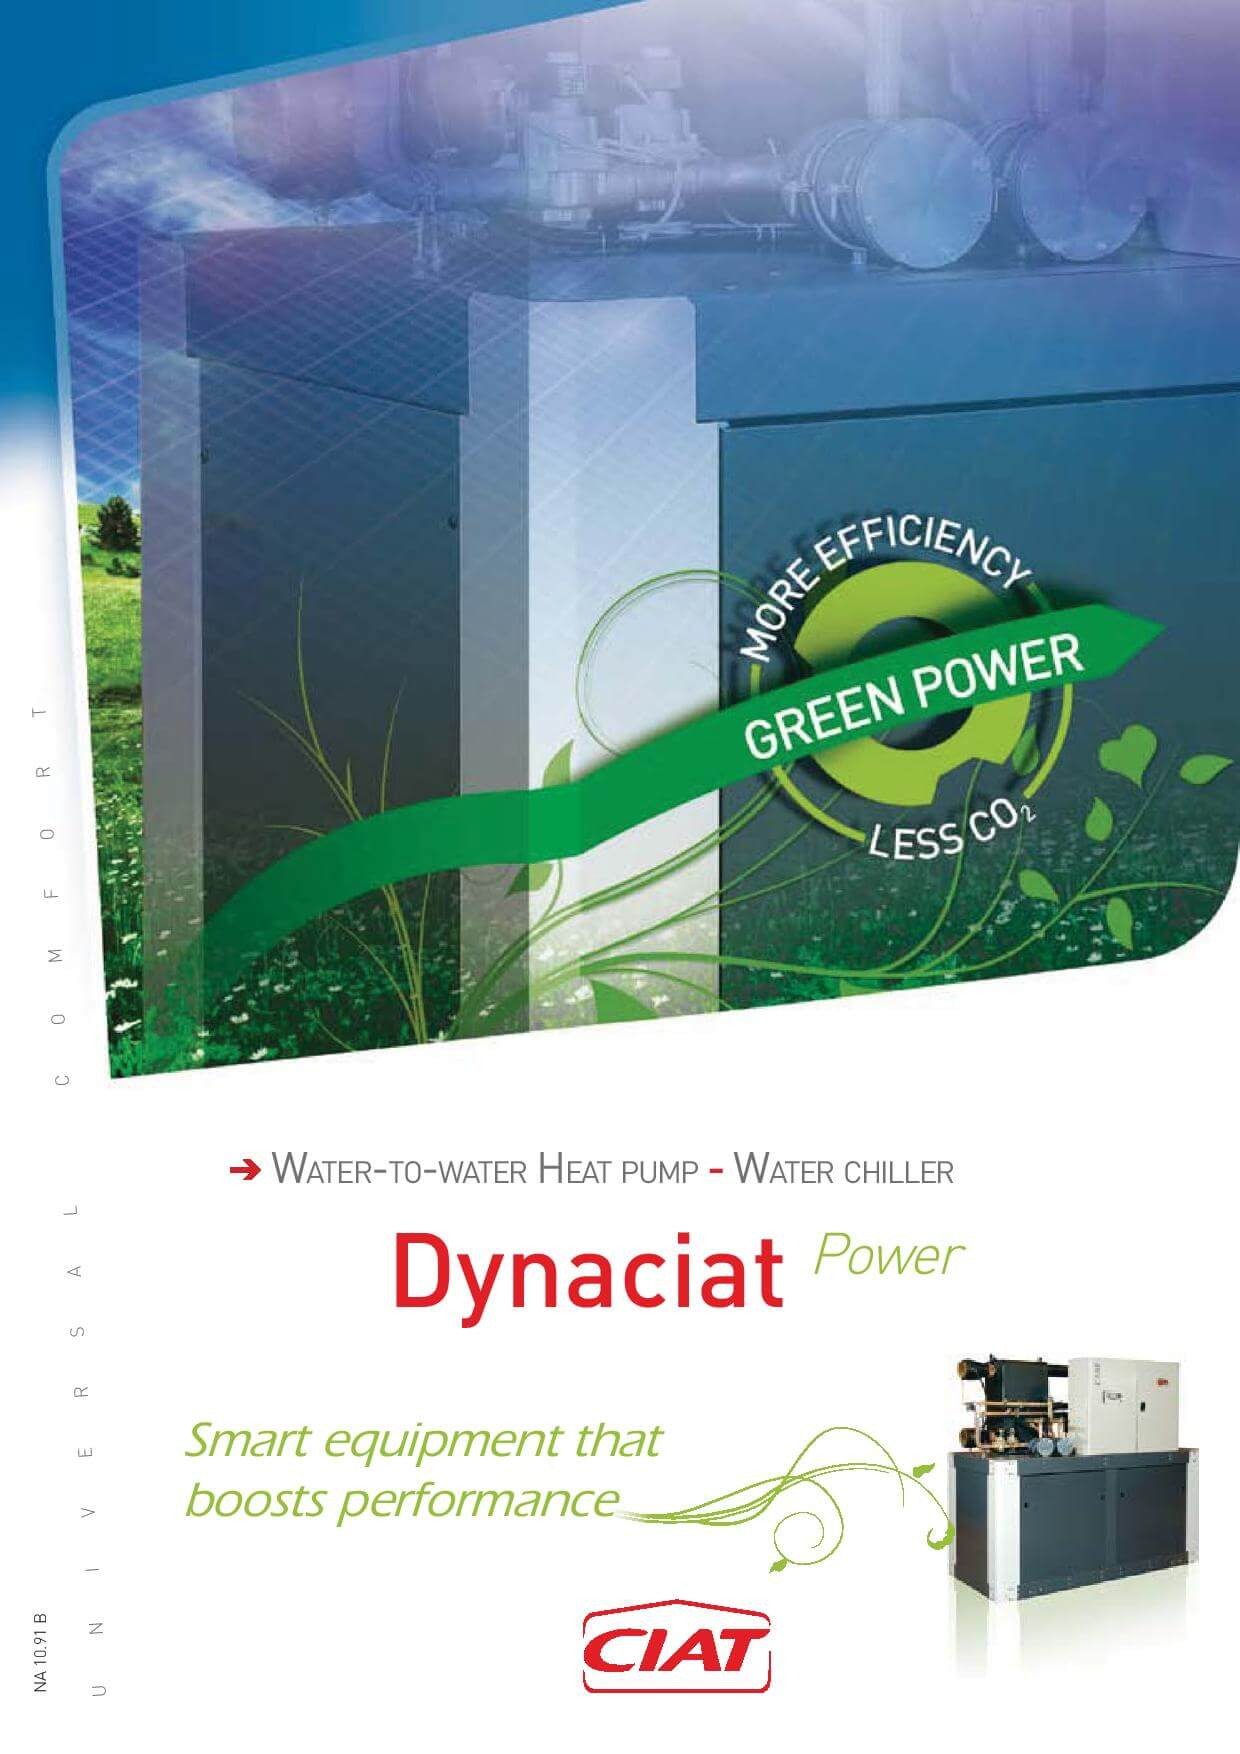 Dynaciat Power Ciat Air Conditioning And Heating